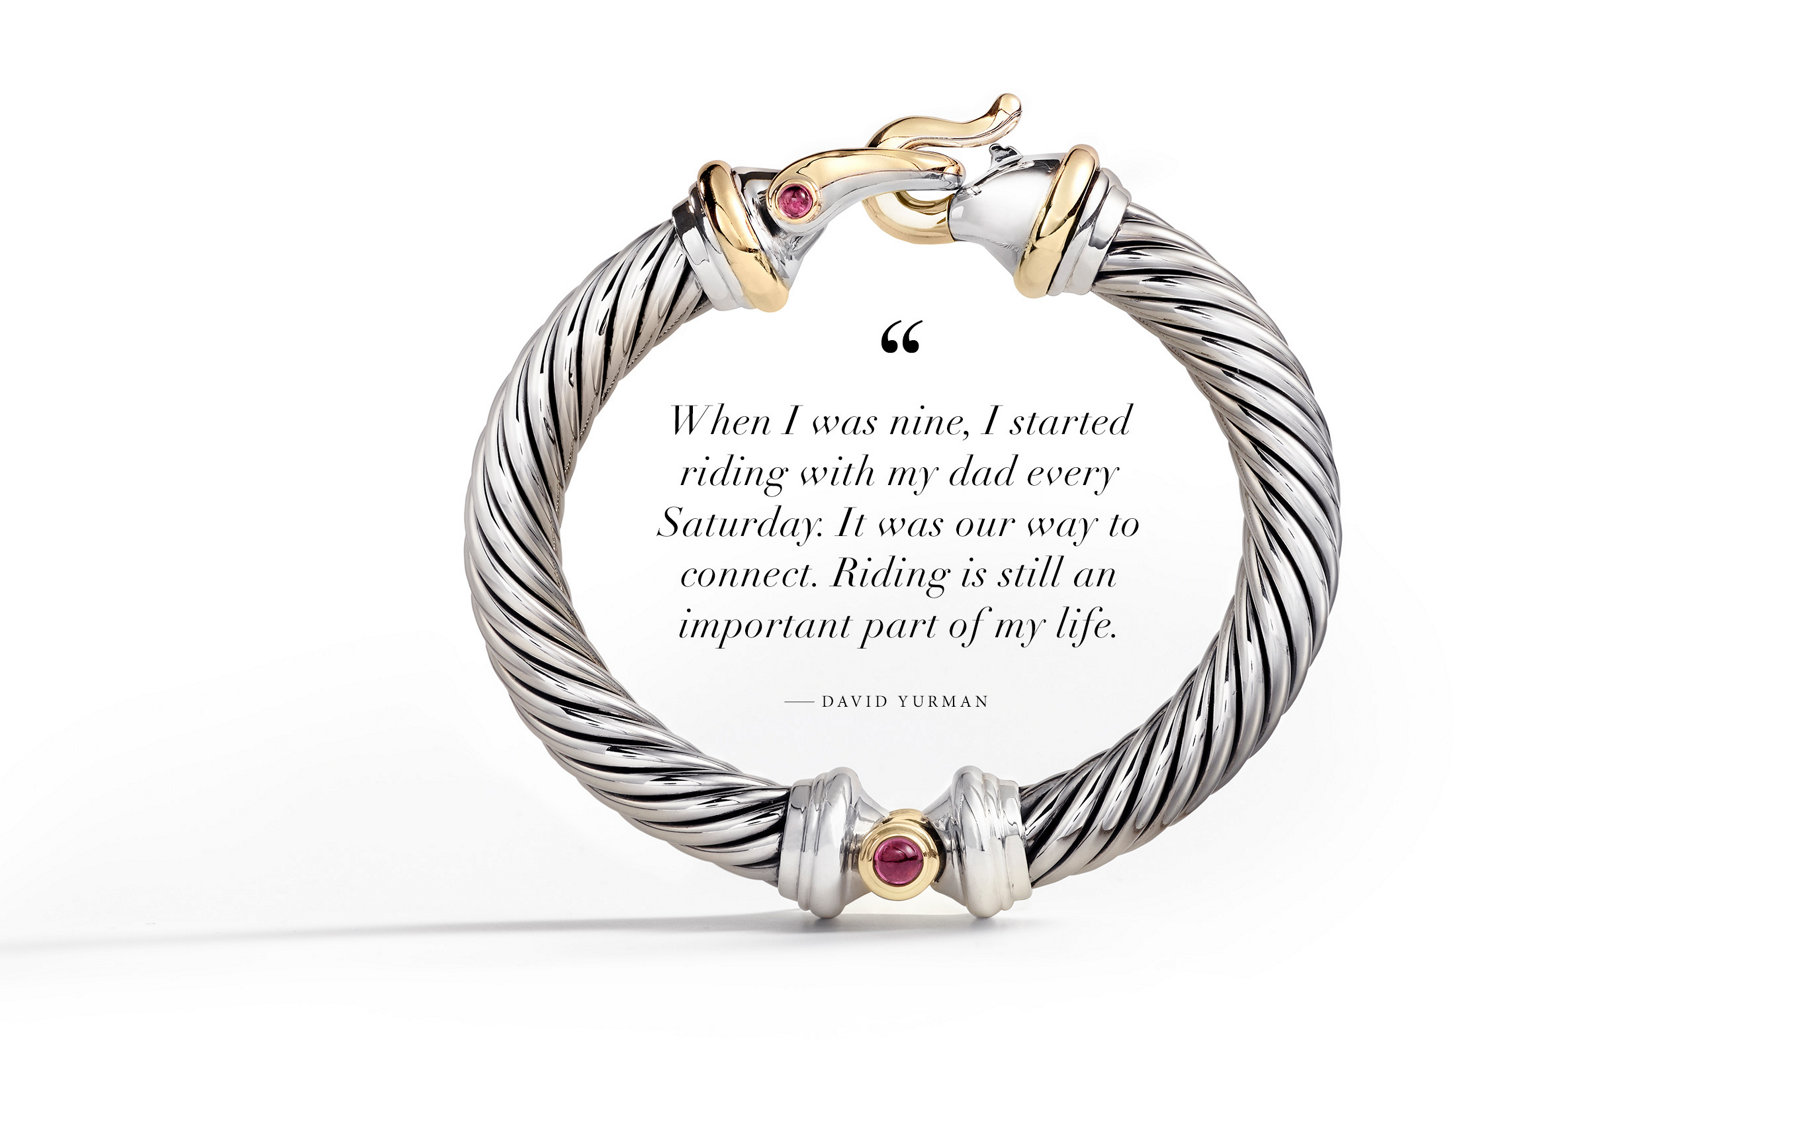 A quote by David Yurman placed in the space in the center of a sterling silver Cable bracelet with a buckle-shaped clasp, 18K yellow gold details and rhodalite garnet.